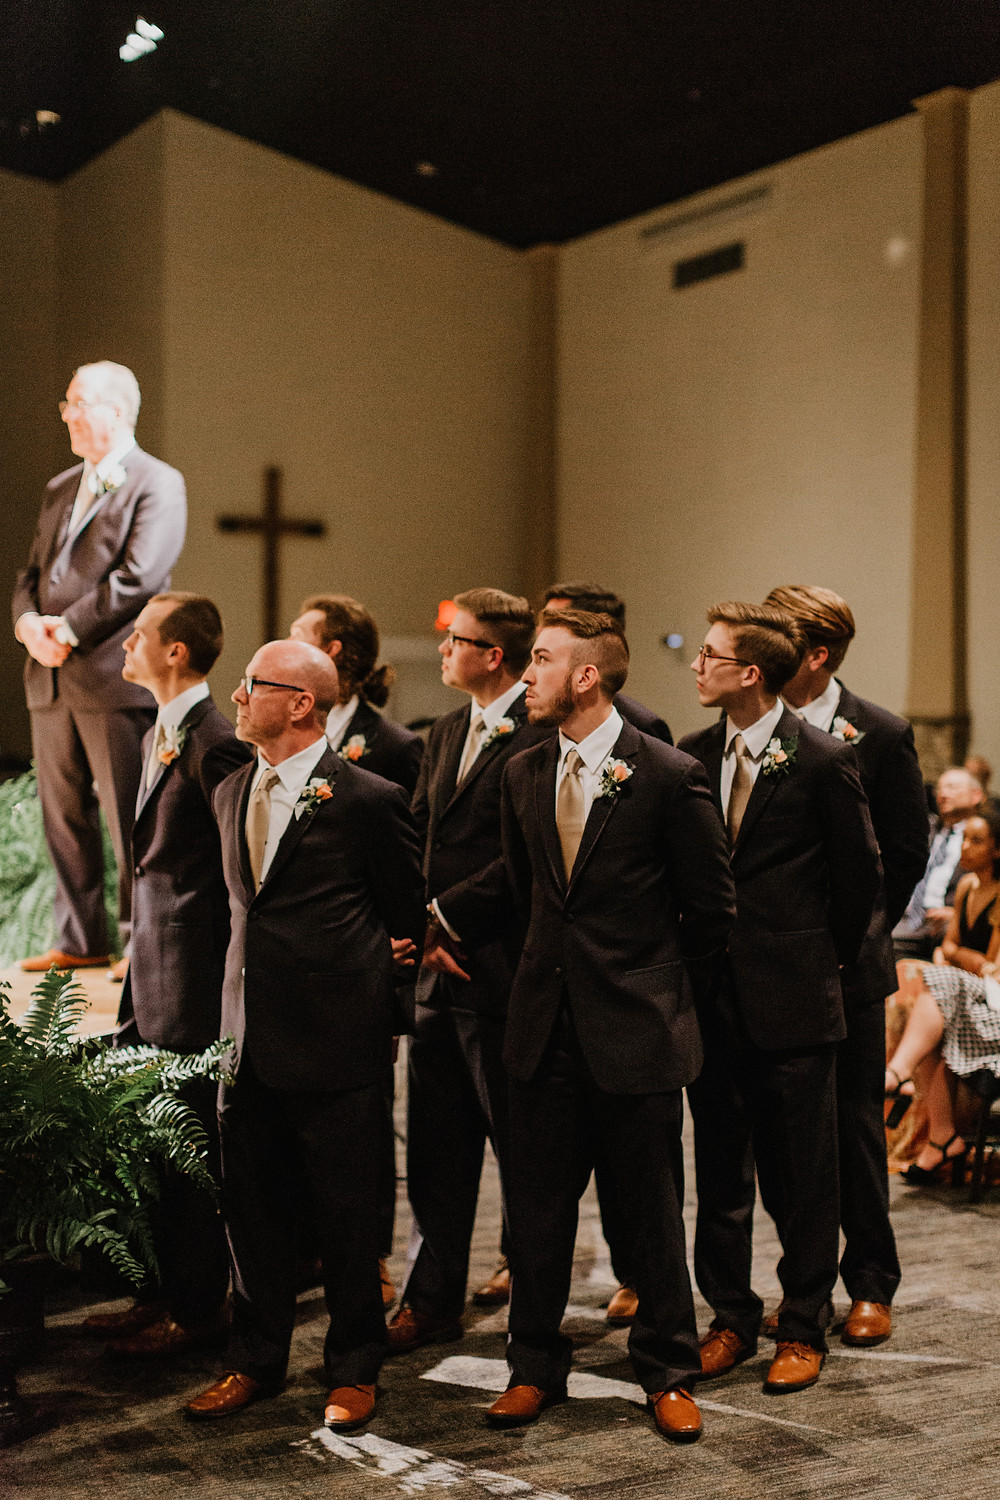 groomsmen at wedding ceremony